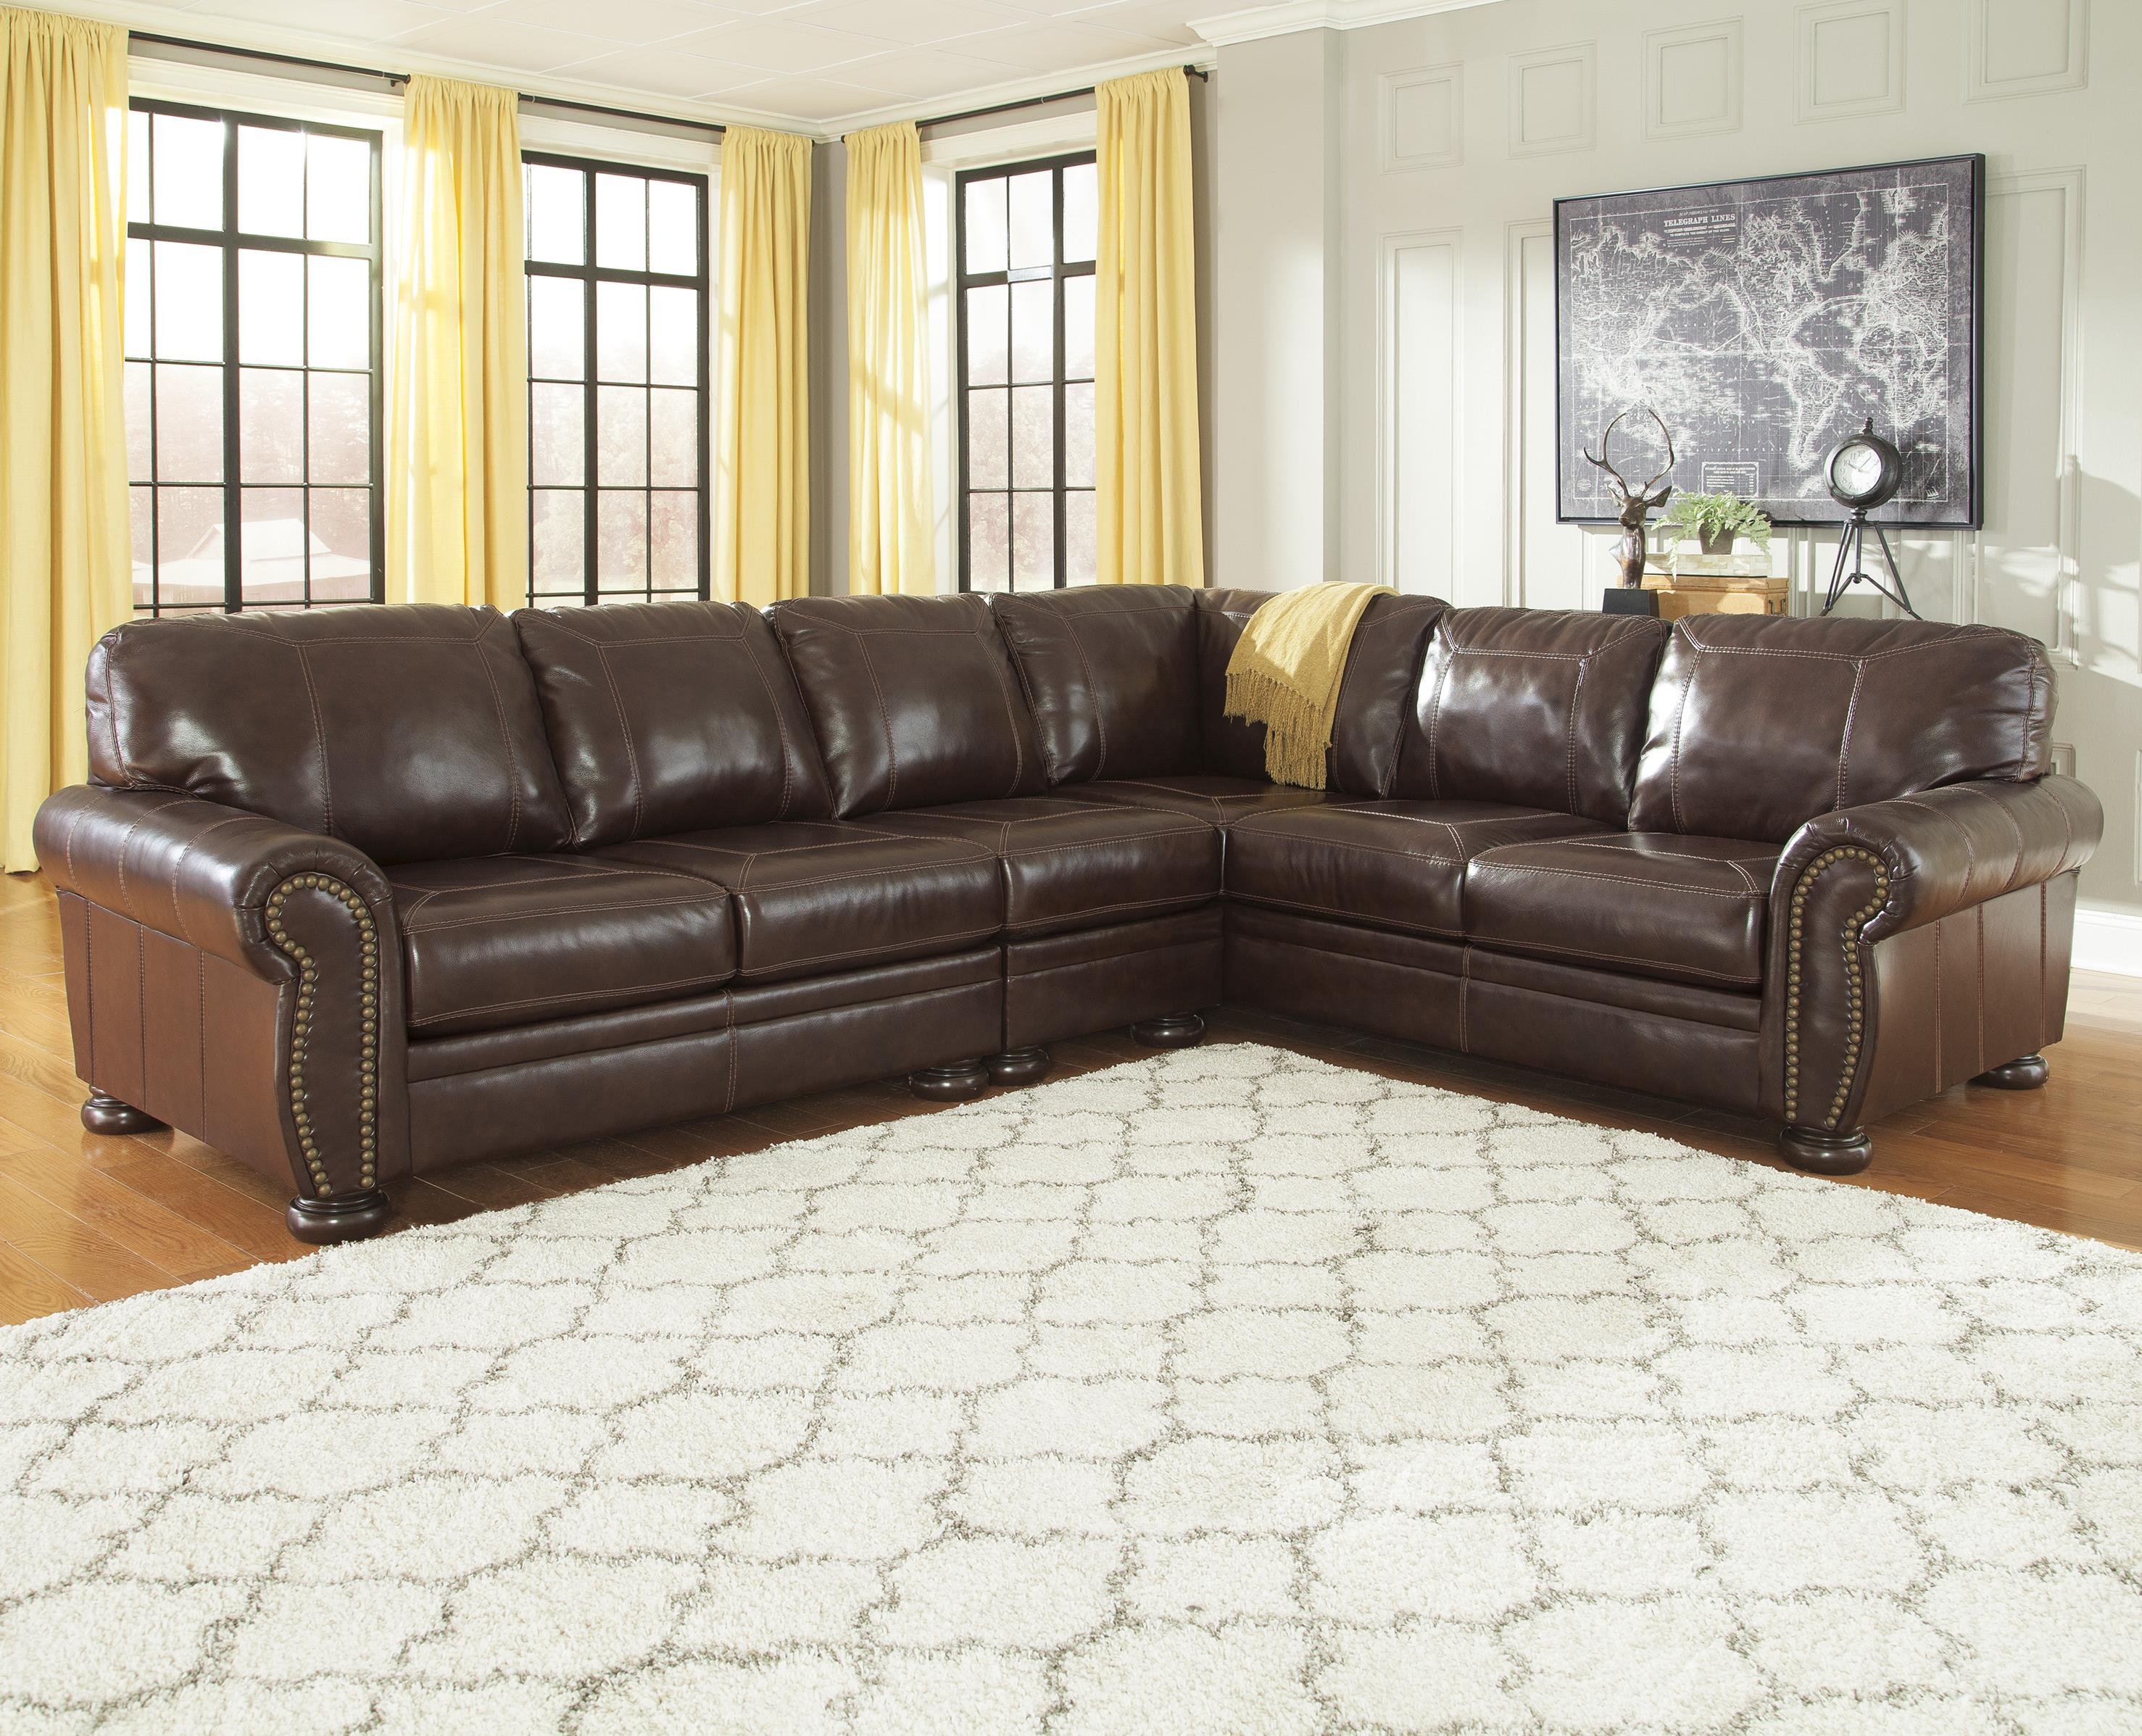 Signature Design by Ashley Banner 3-Piece Sectional - Item Number: 5040455+46+67